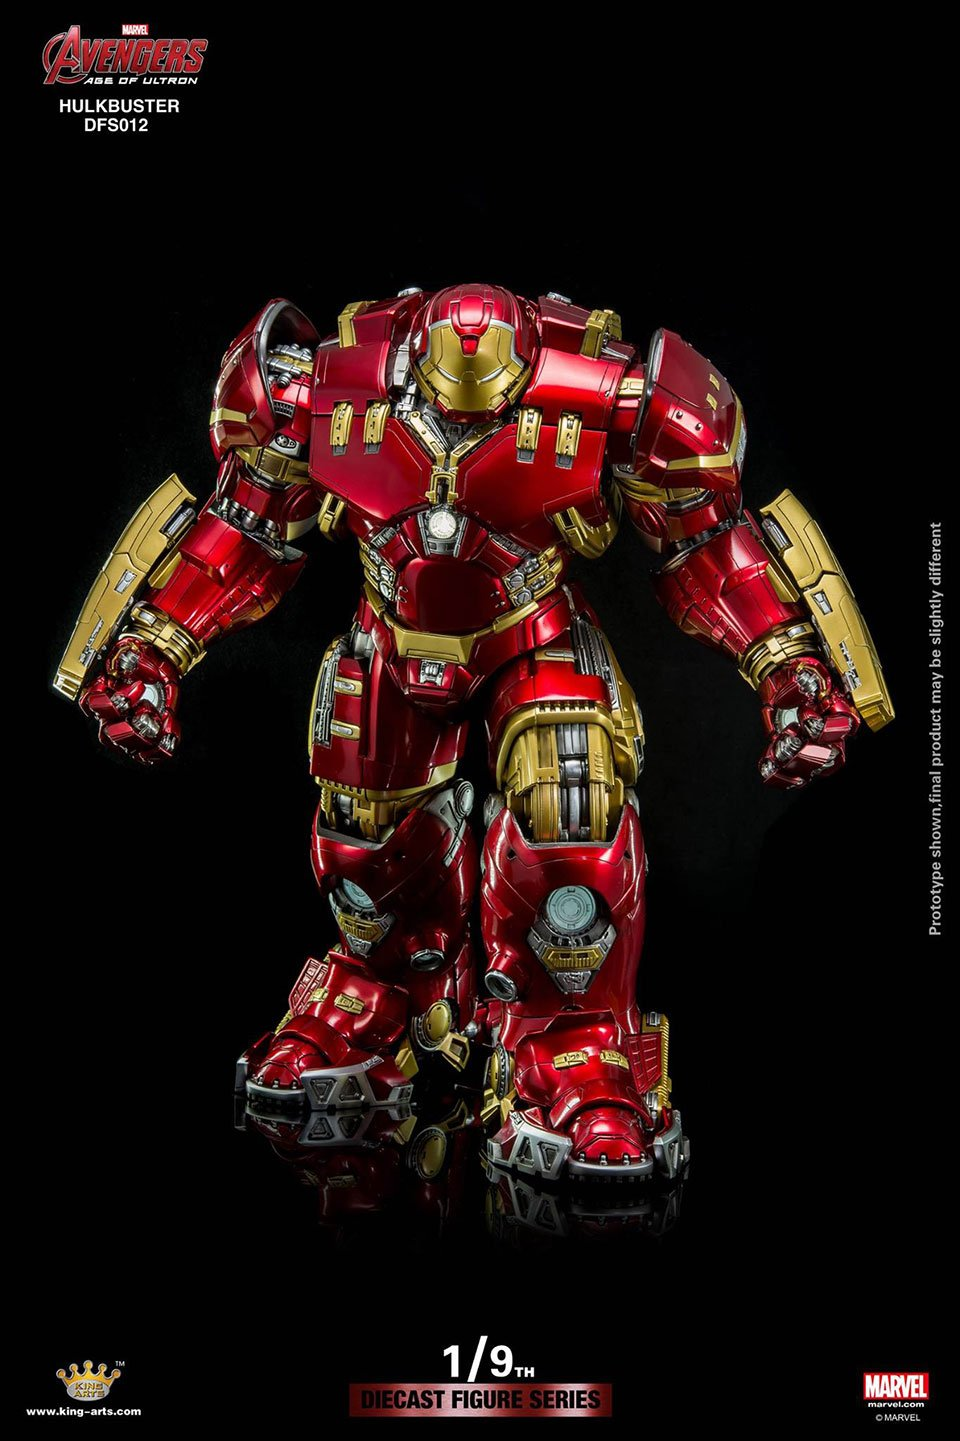 I Is For Iron ~ King arts hulkbuster has room for an iron man action